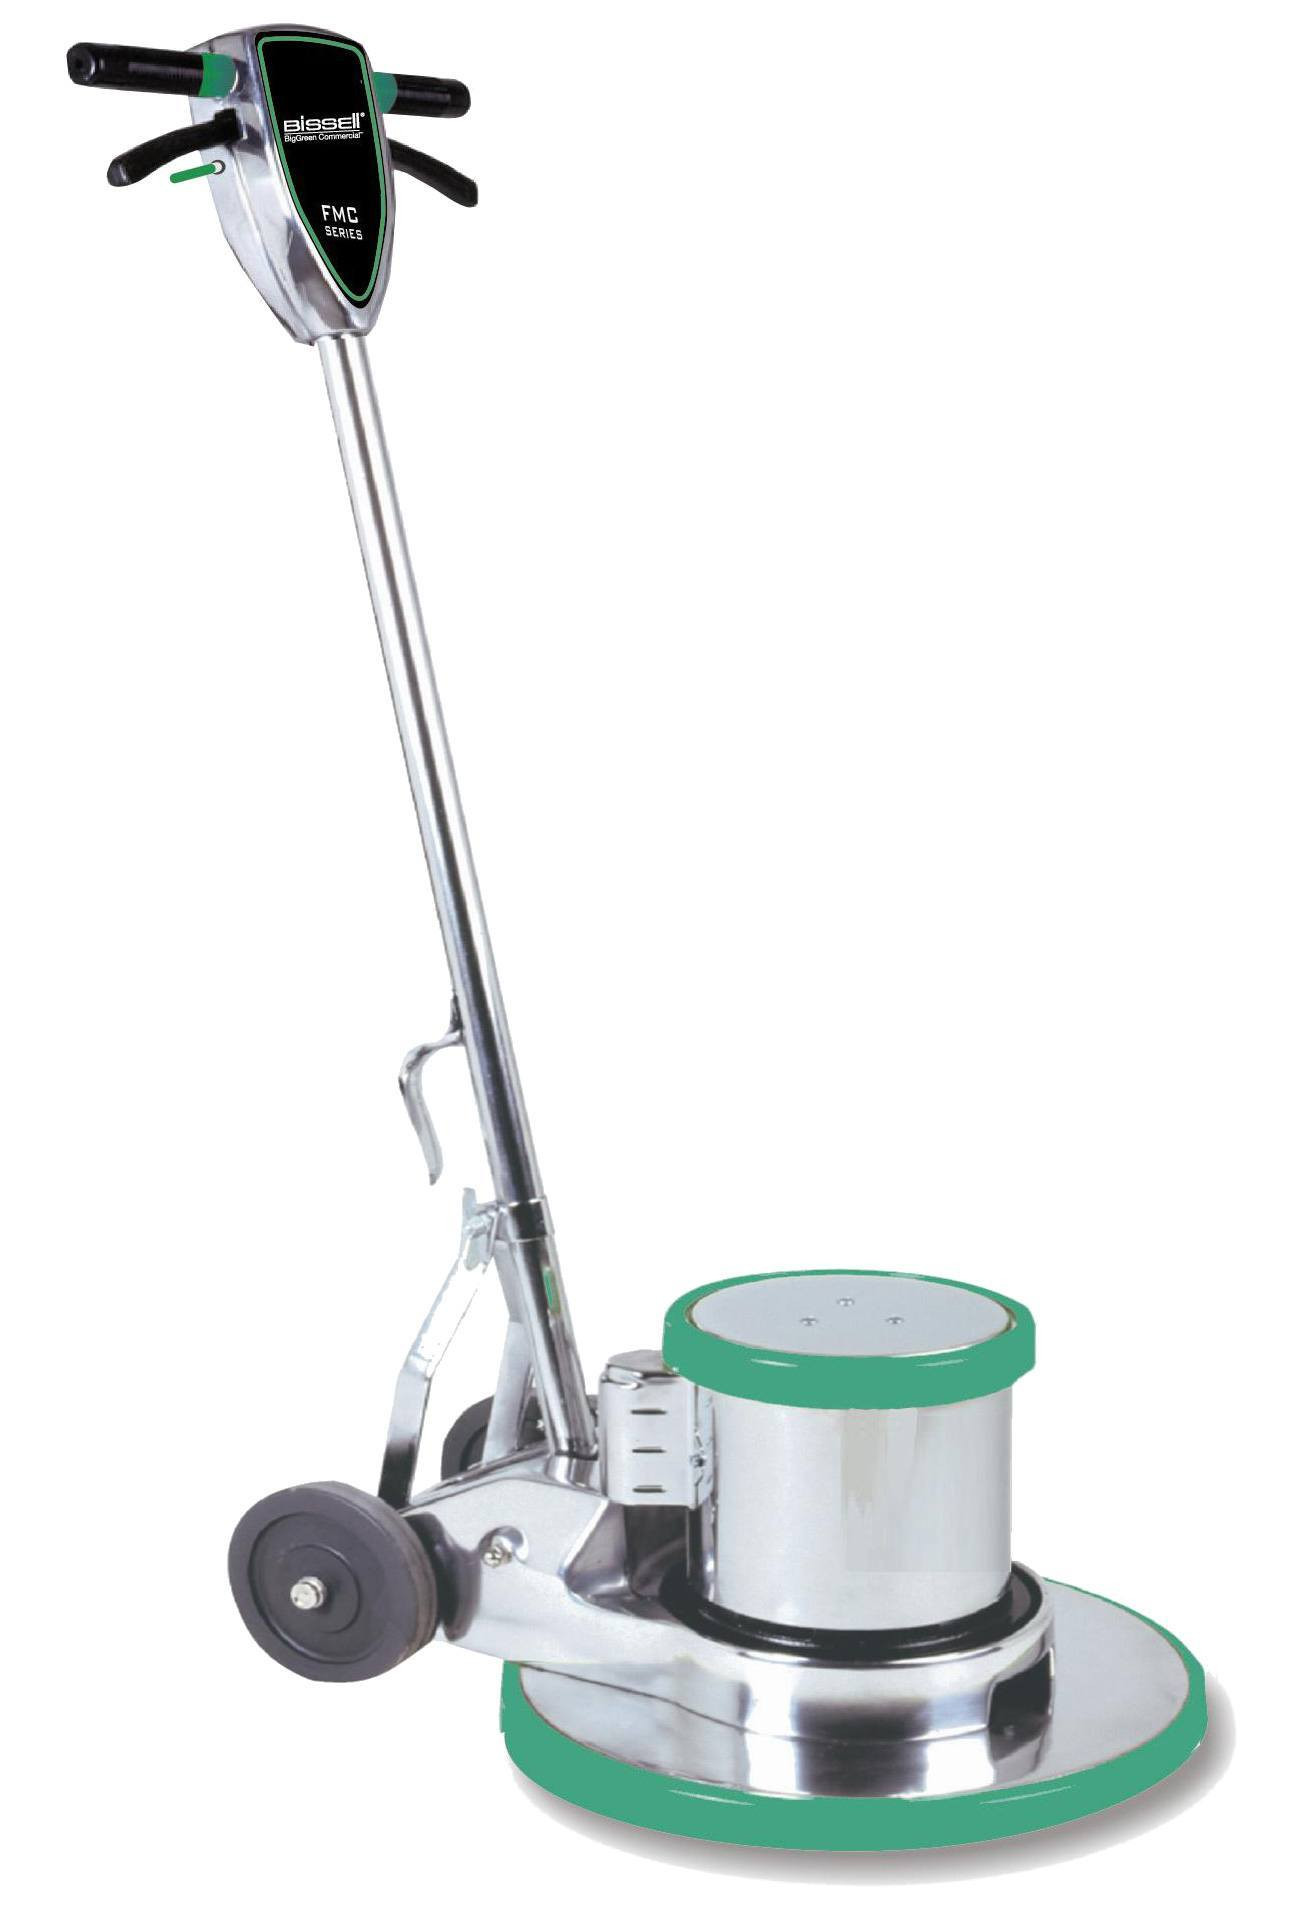 Bisselll 20 inch carpet scrubbing machine for Scrubbing concrete floors